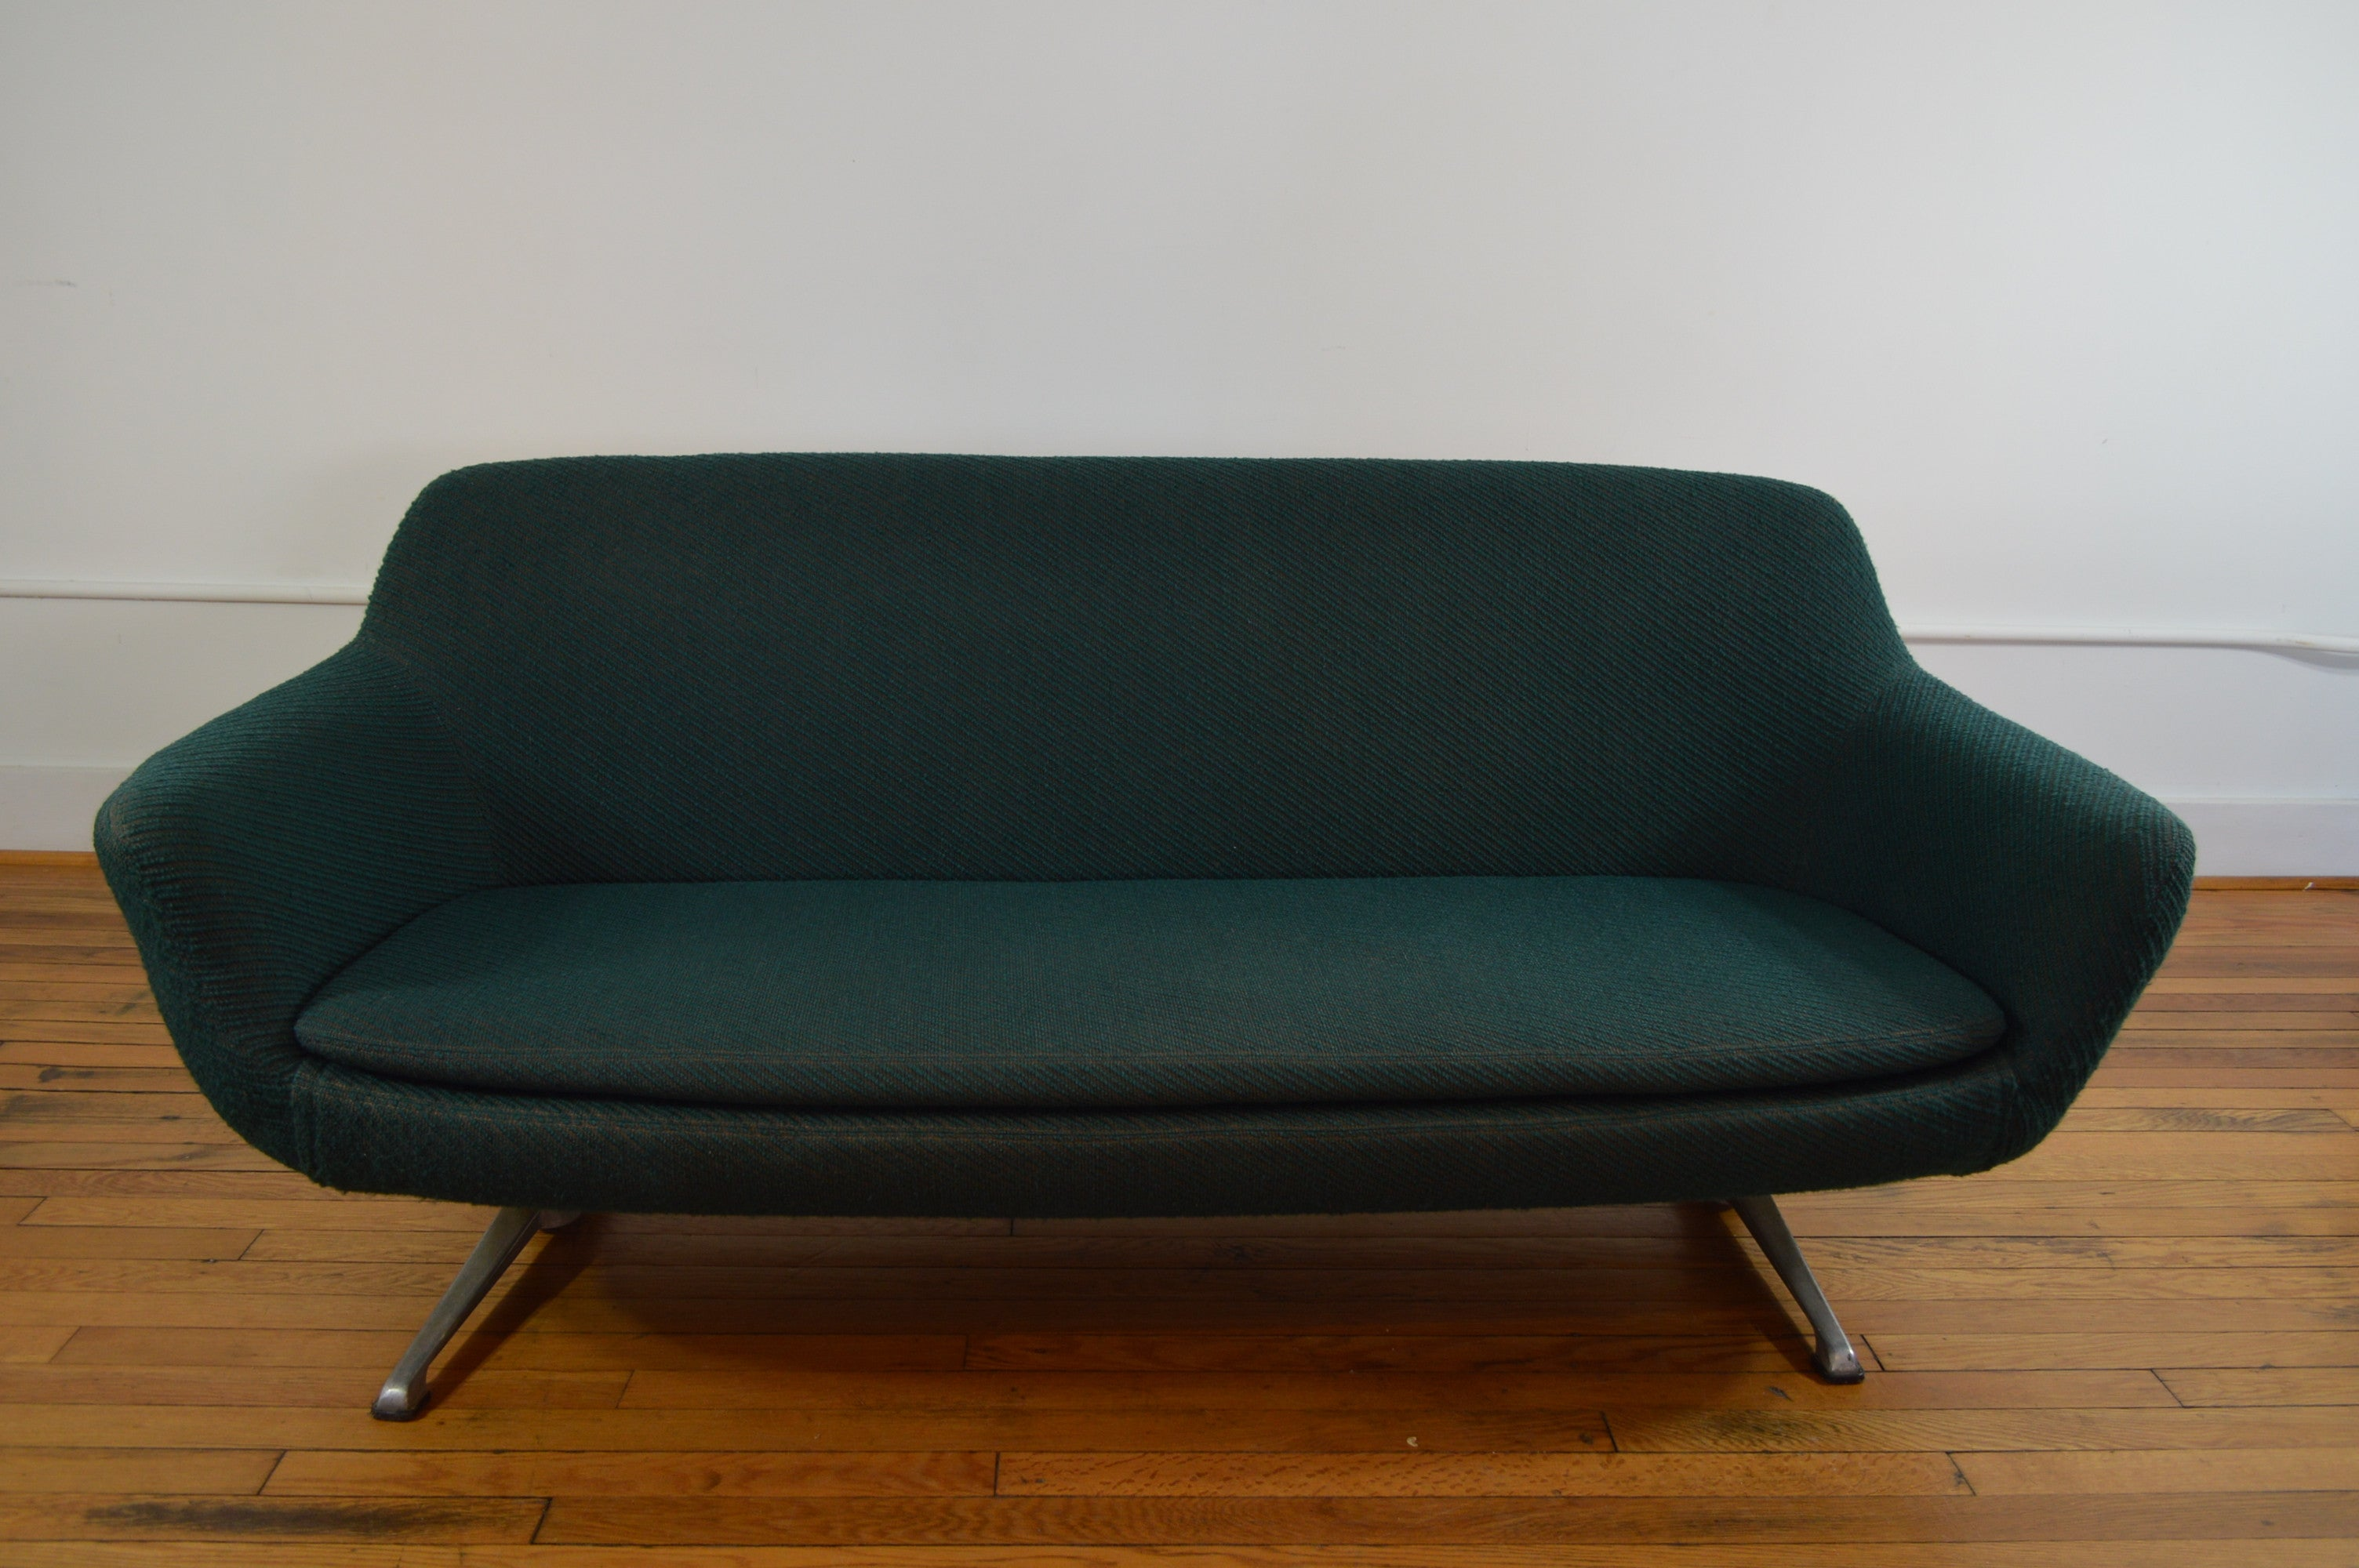 Space Age Furniture Overman Sweden Space Age Modern Pod Sofa Galaxiemodern